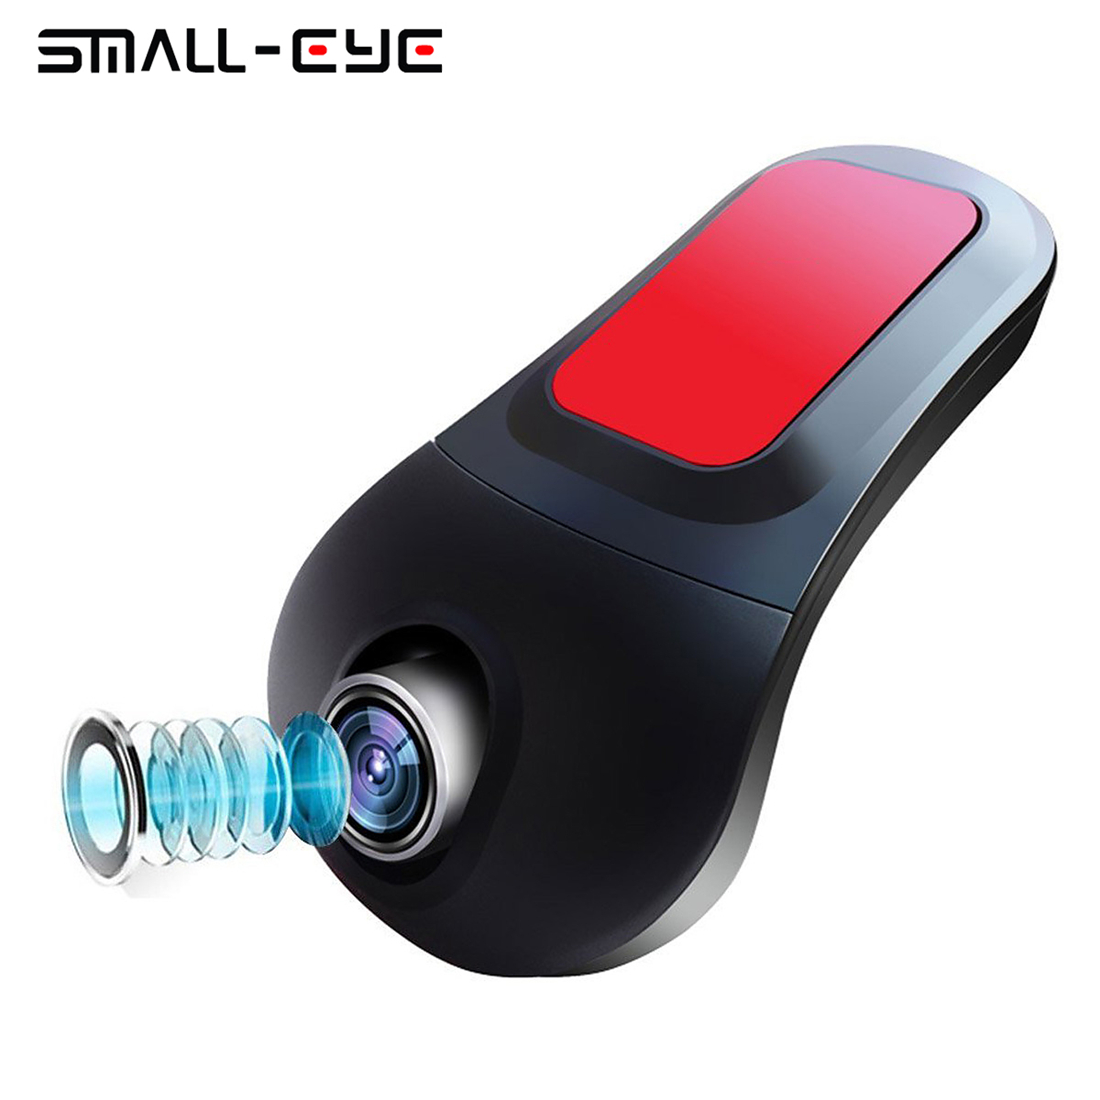 SMALL-EYE Car DVR Registrator Dash Camera Cam Digital Video Recorder Camcorder 1080P Night Vision Novatek 96655 IMX 322 WiFi wifi car dvr dash cam camera digital video recorder full hd 1080p novatek 96655 imx 322 for vw touareg 2014 2015 registrator